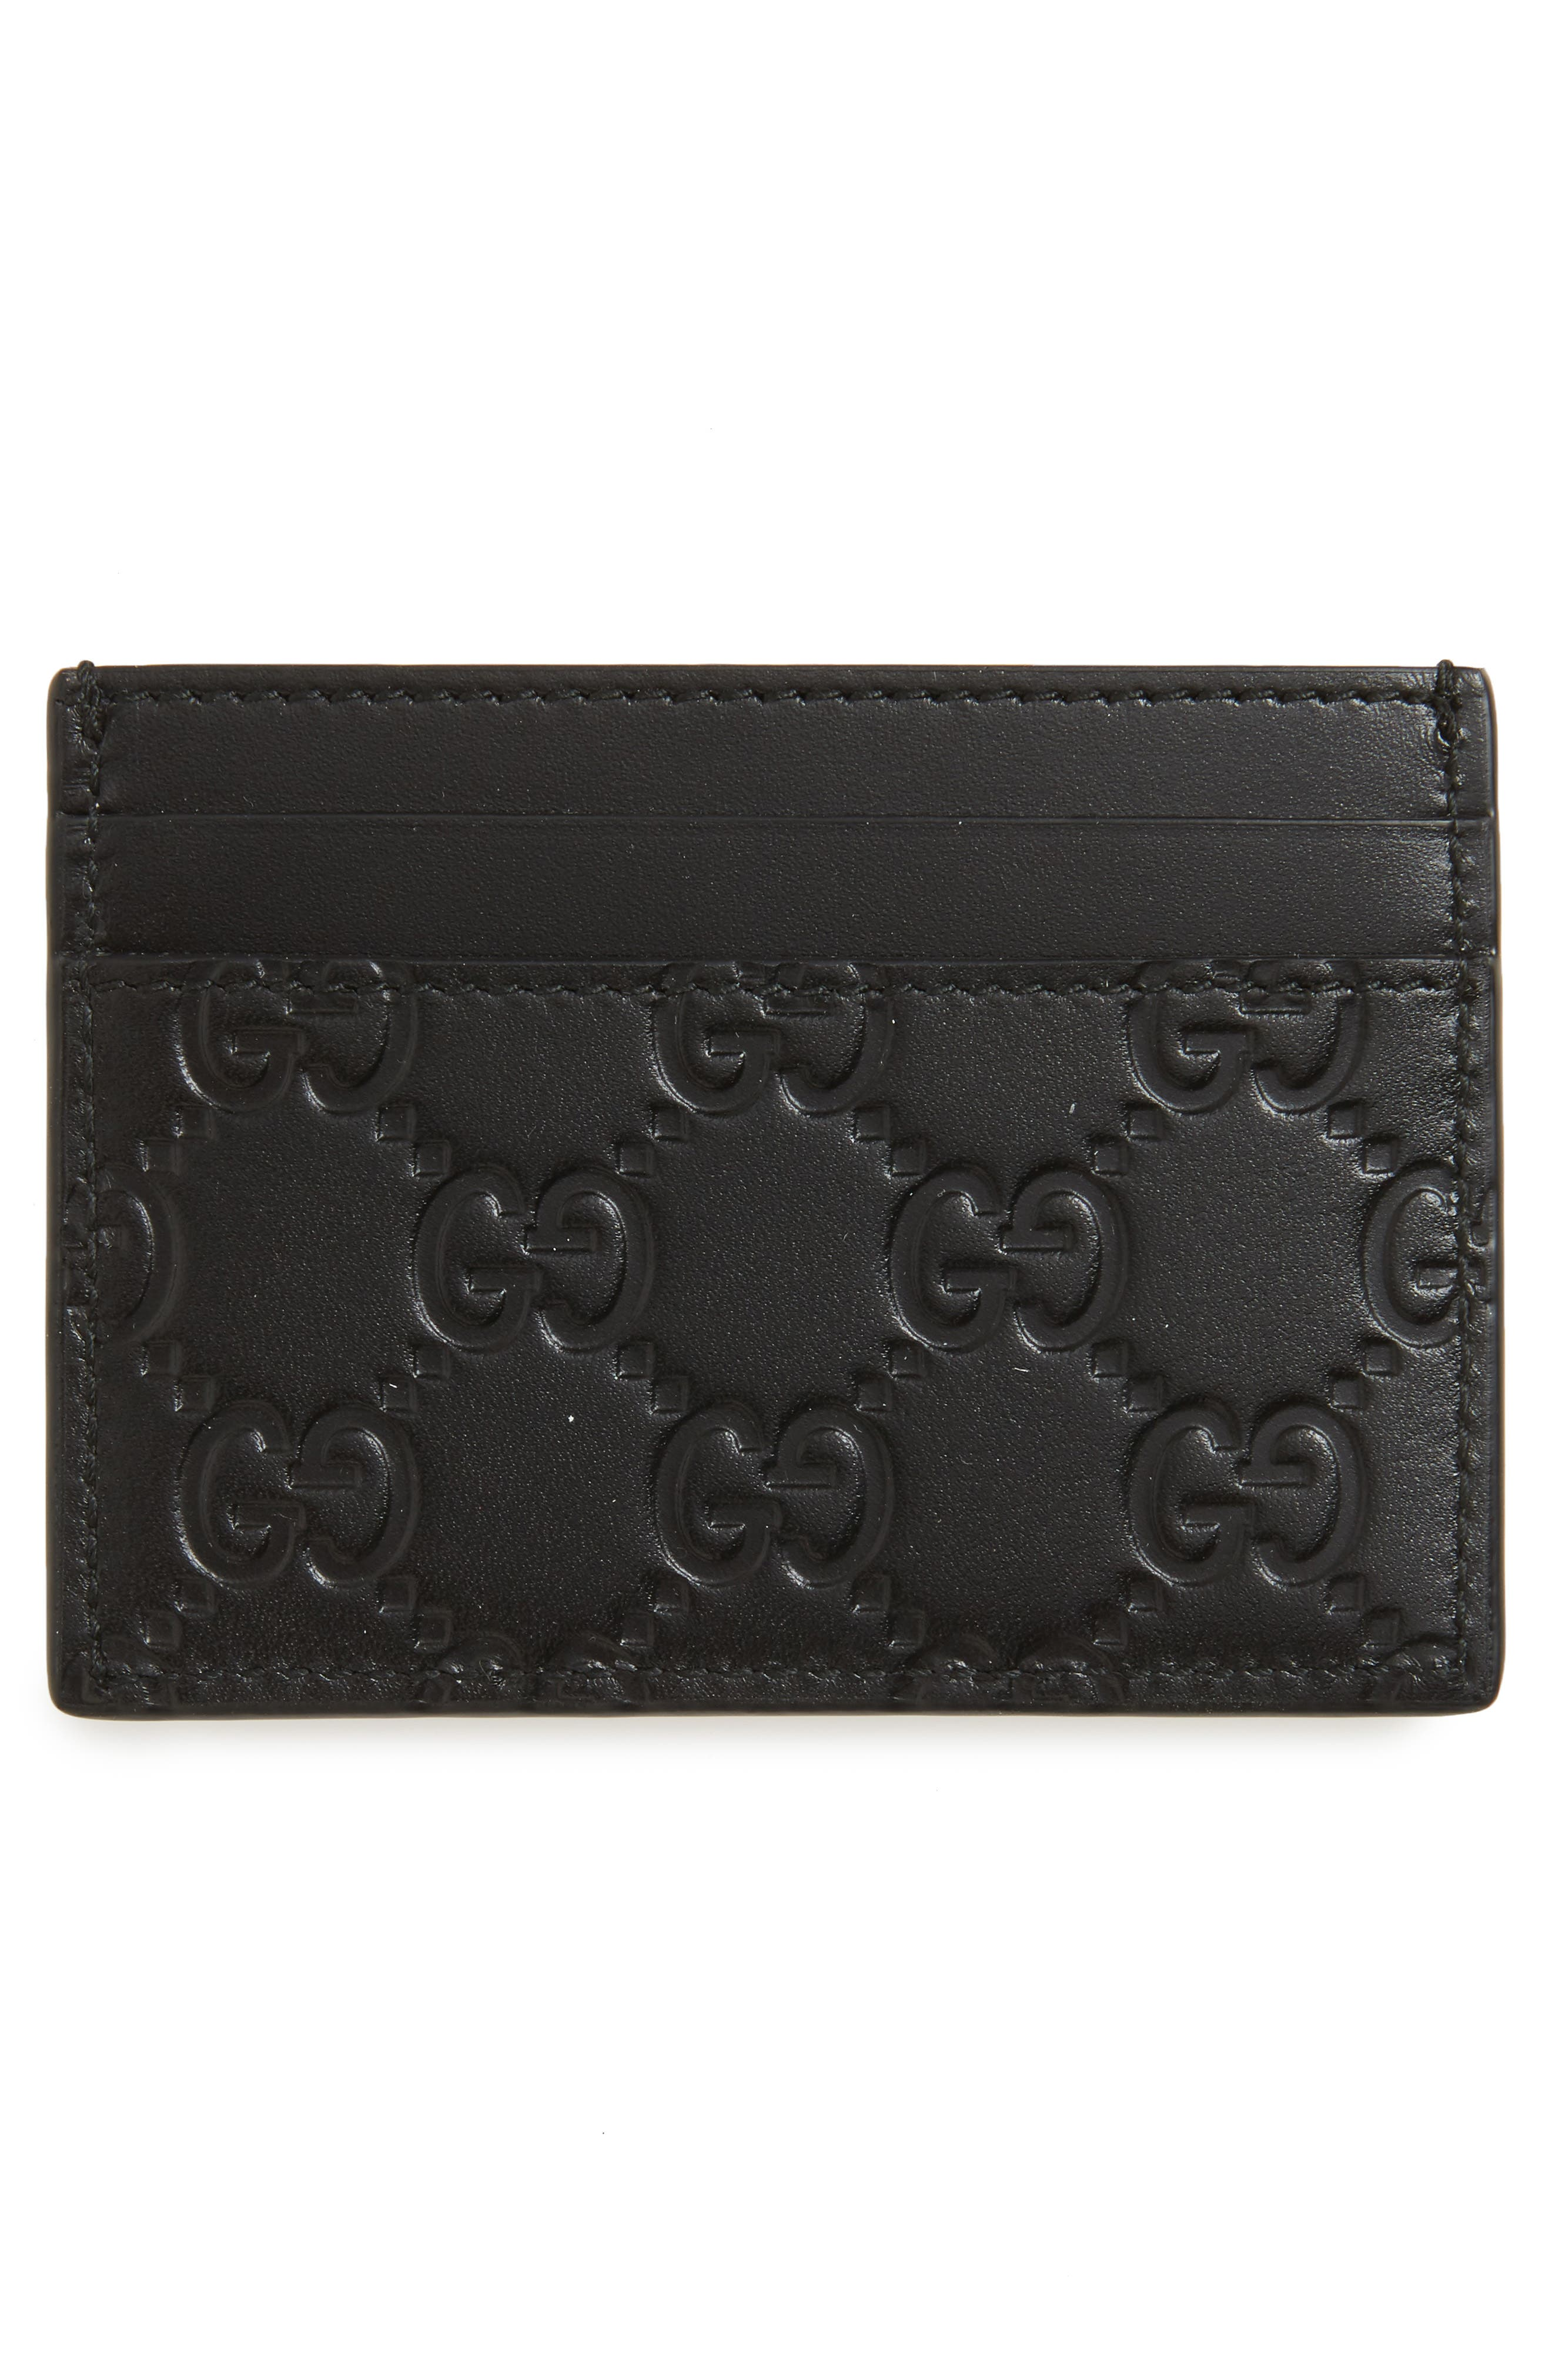 Dorian Leather Card Case,                             Alternate thumbnail 3, color,                             BLACK